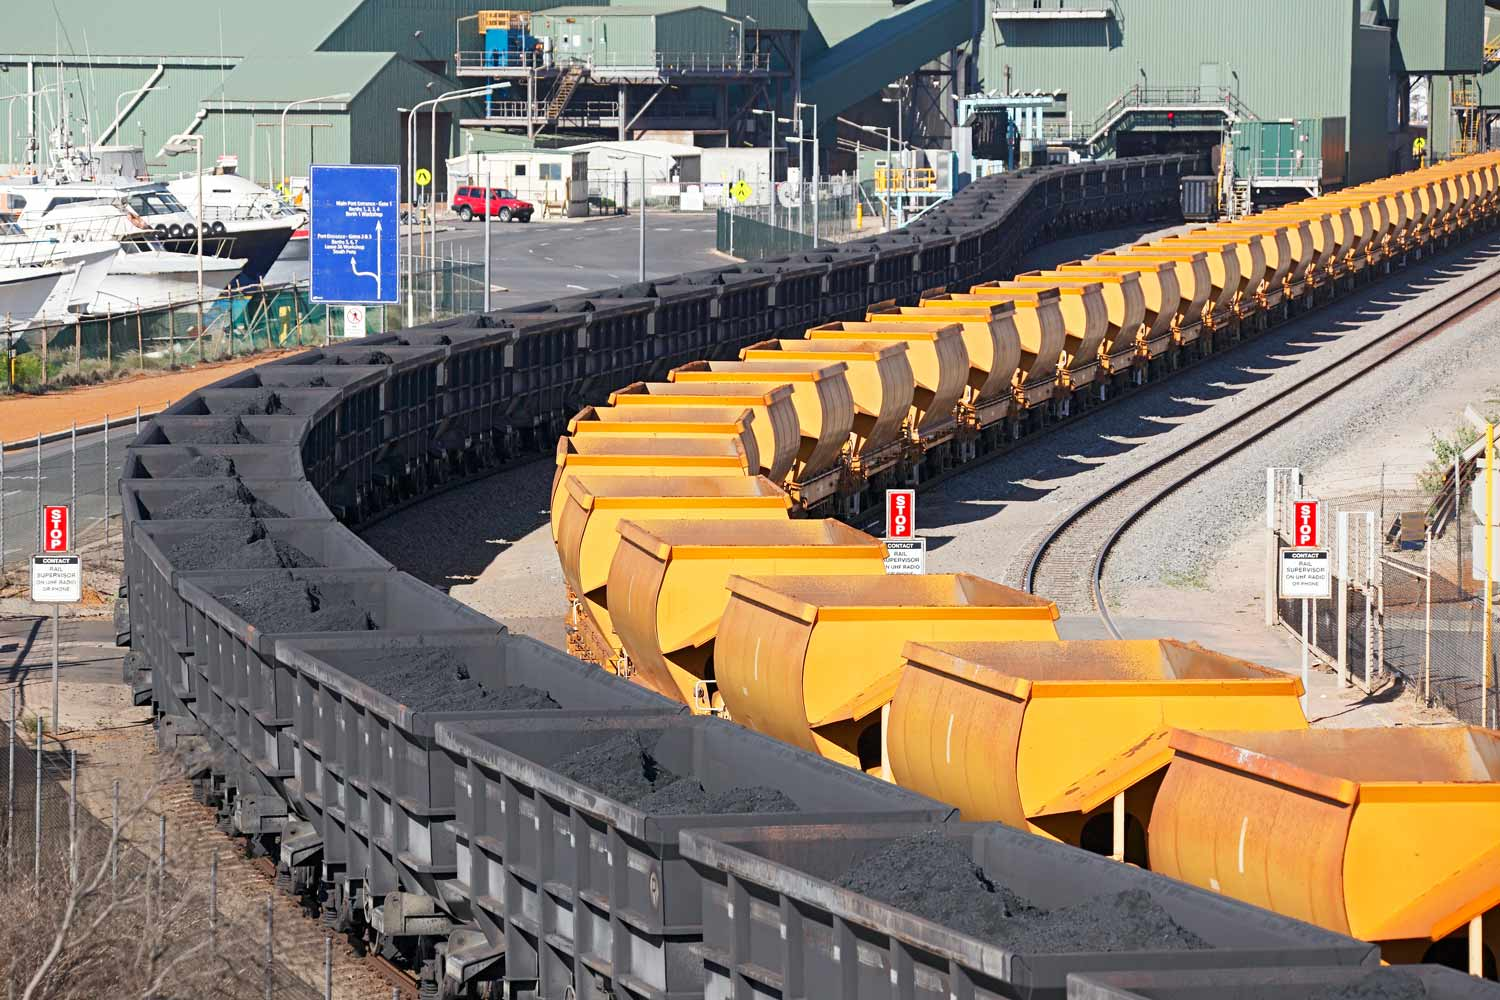 iron-ore-train-cars-port